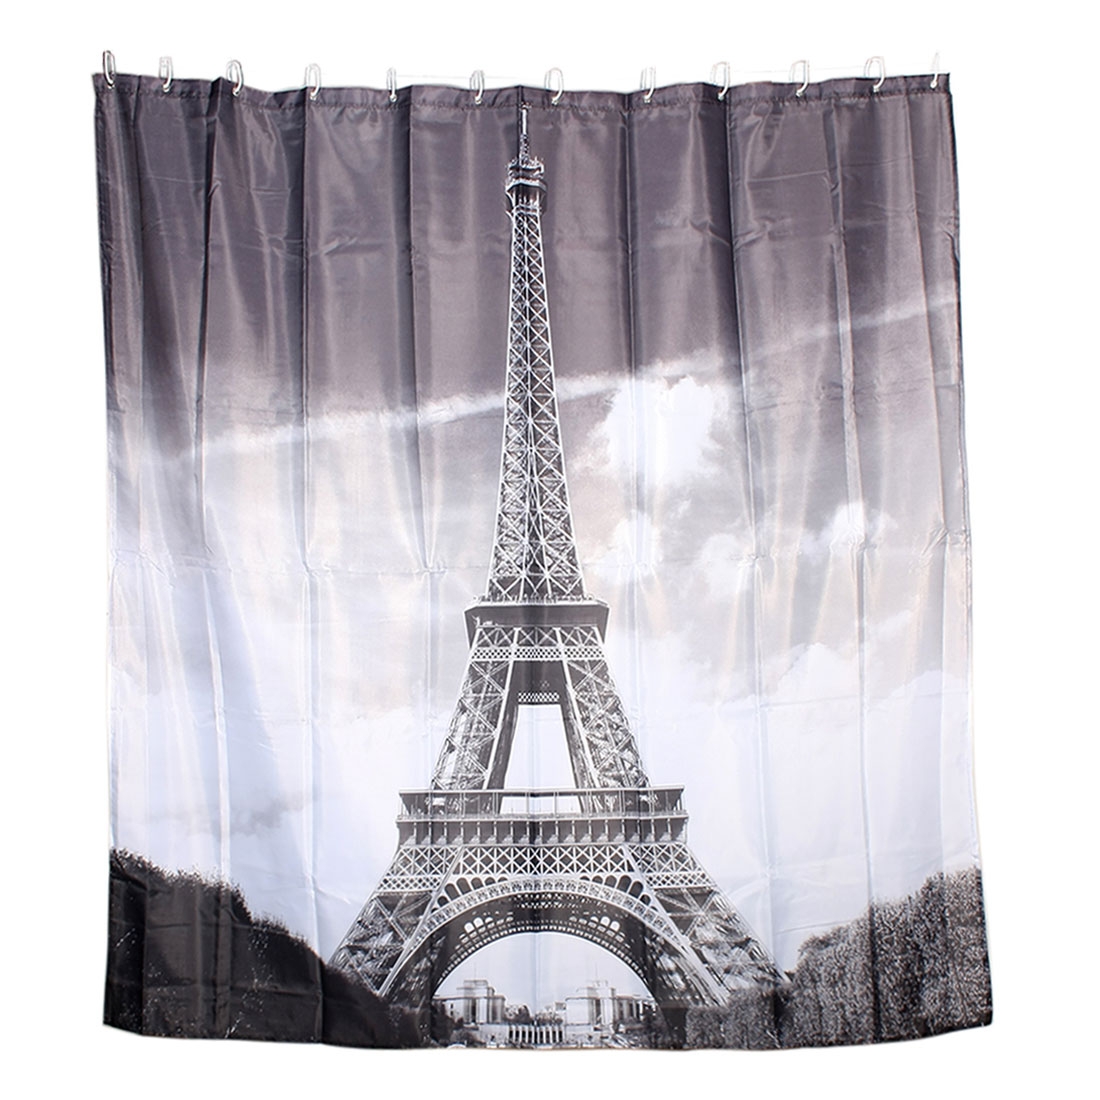 Eiffel Tower Print Home Decor Shower Curtain w 12 Hooks Rings 180 x 180cm